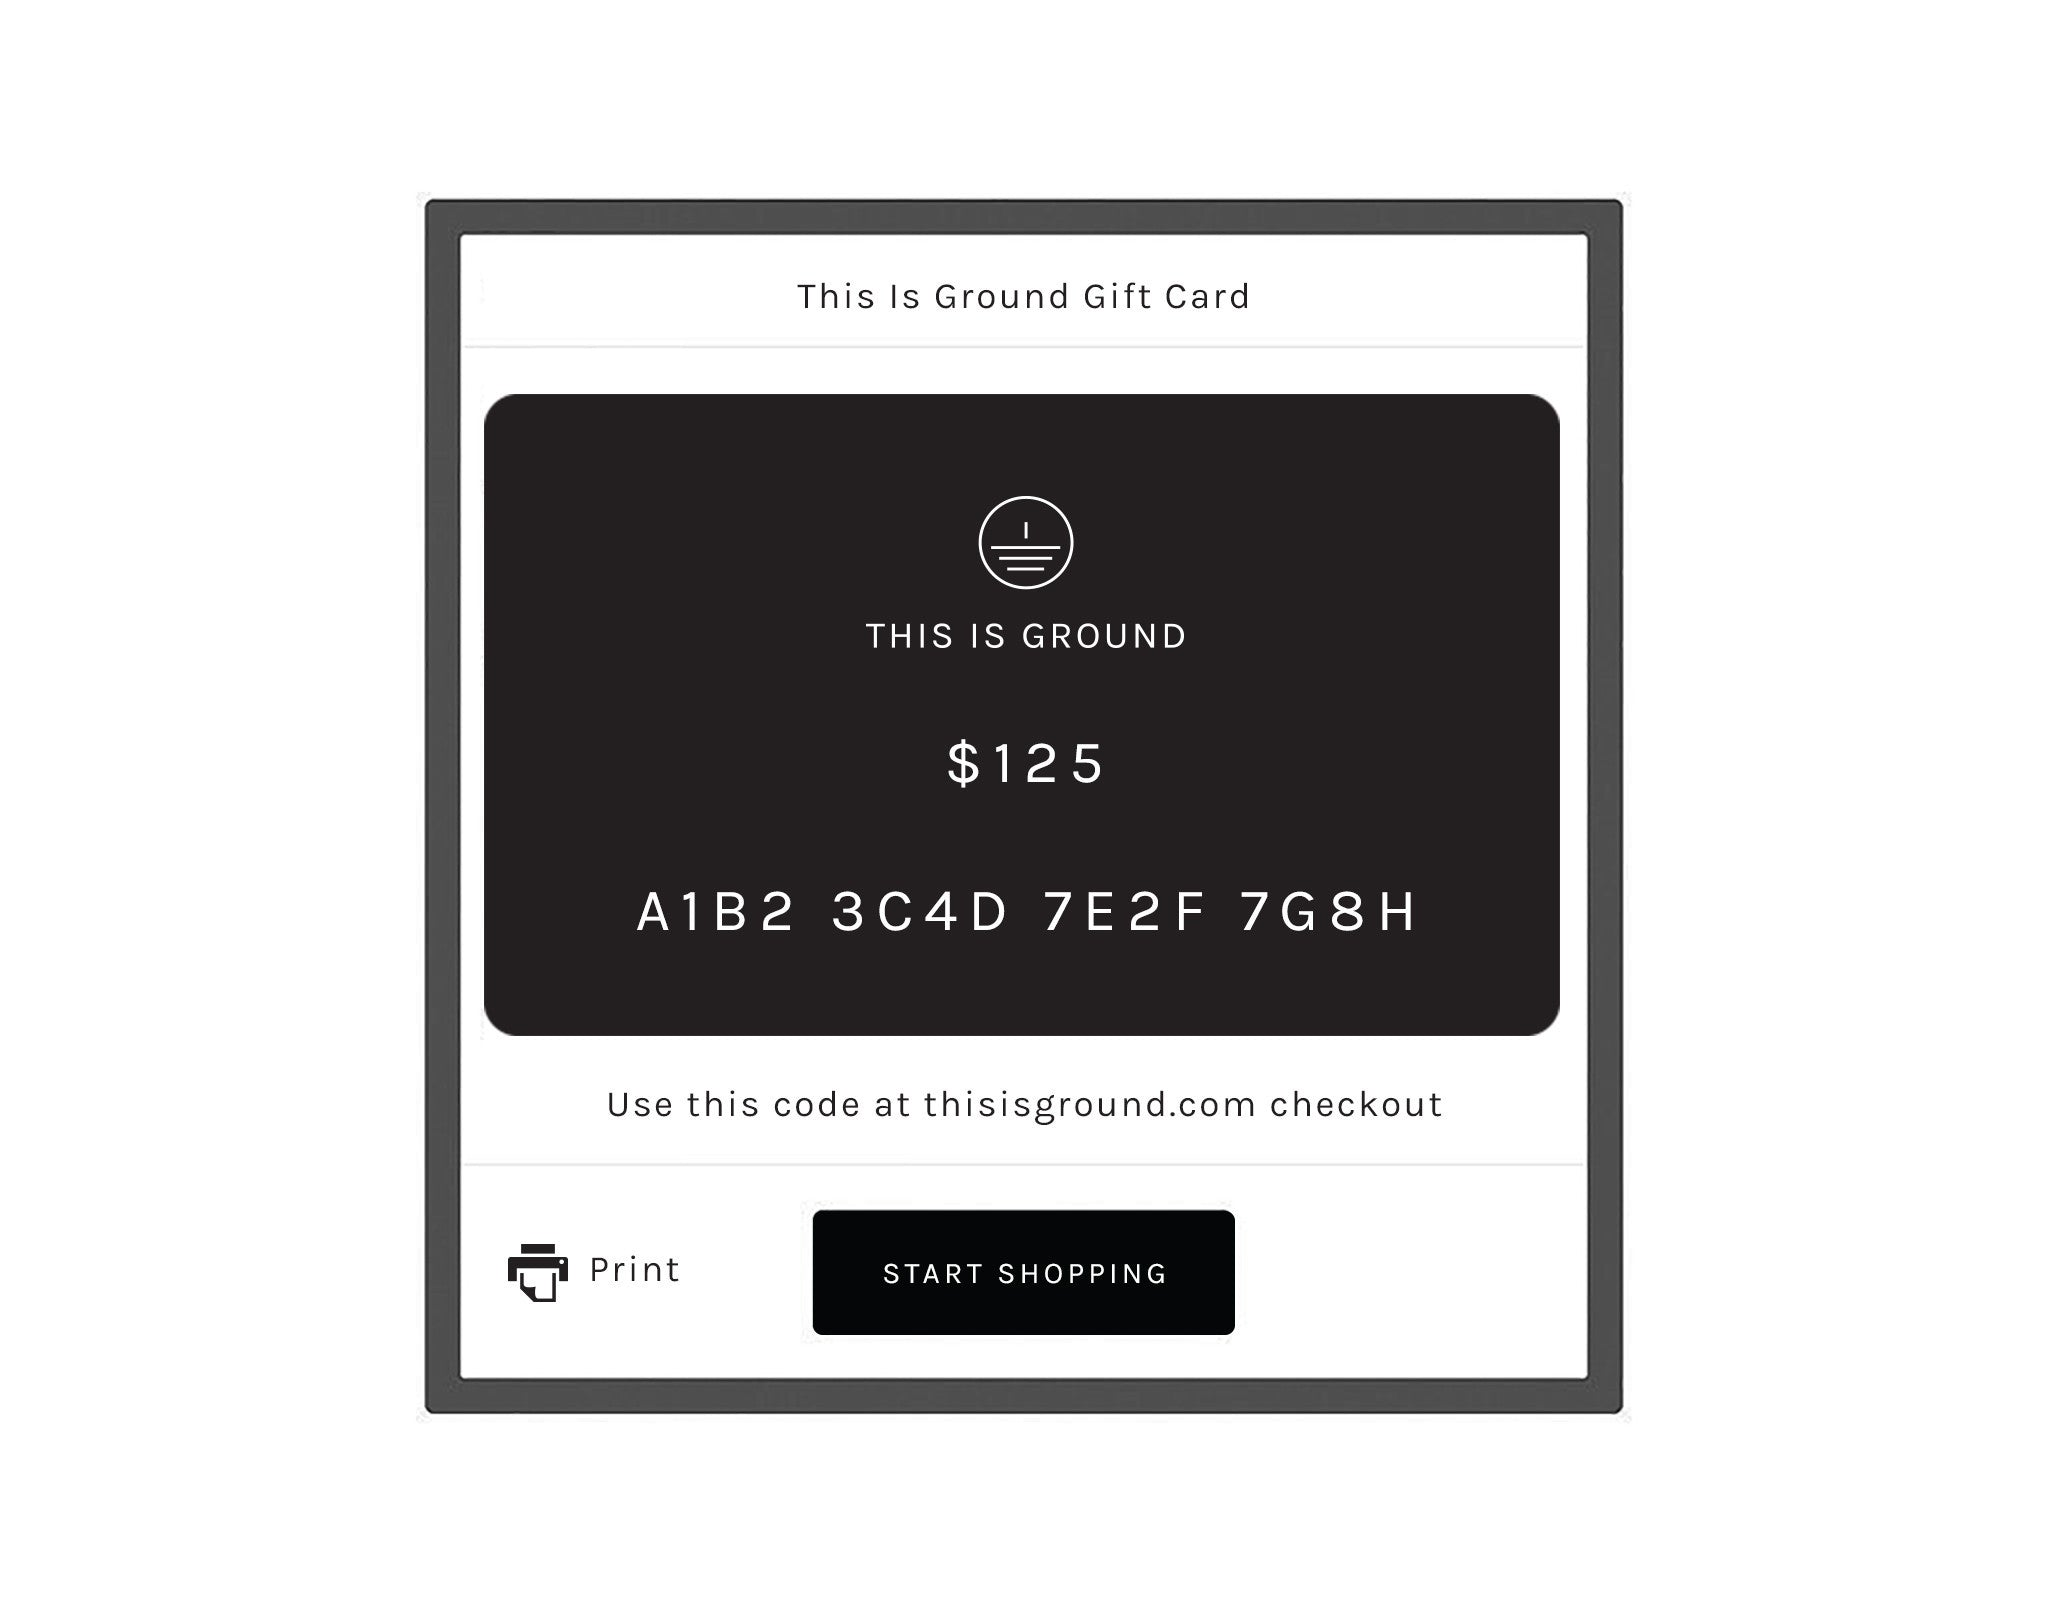 Gift Card for thisisground.com